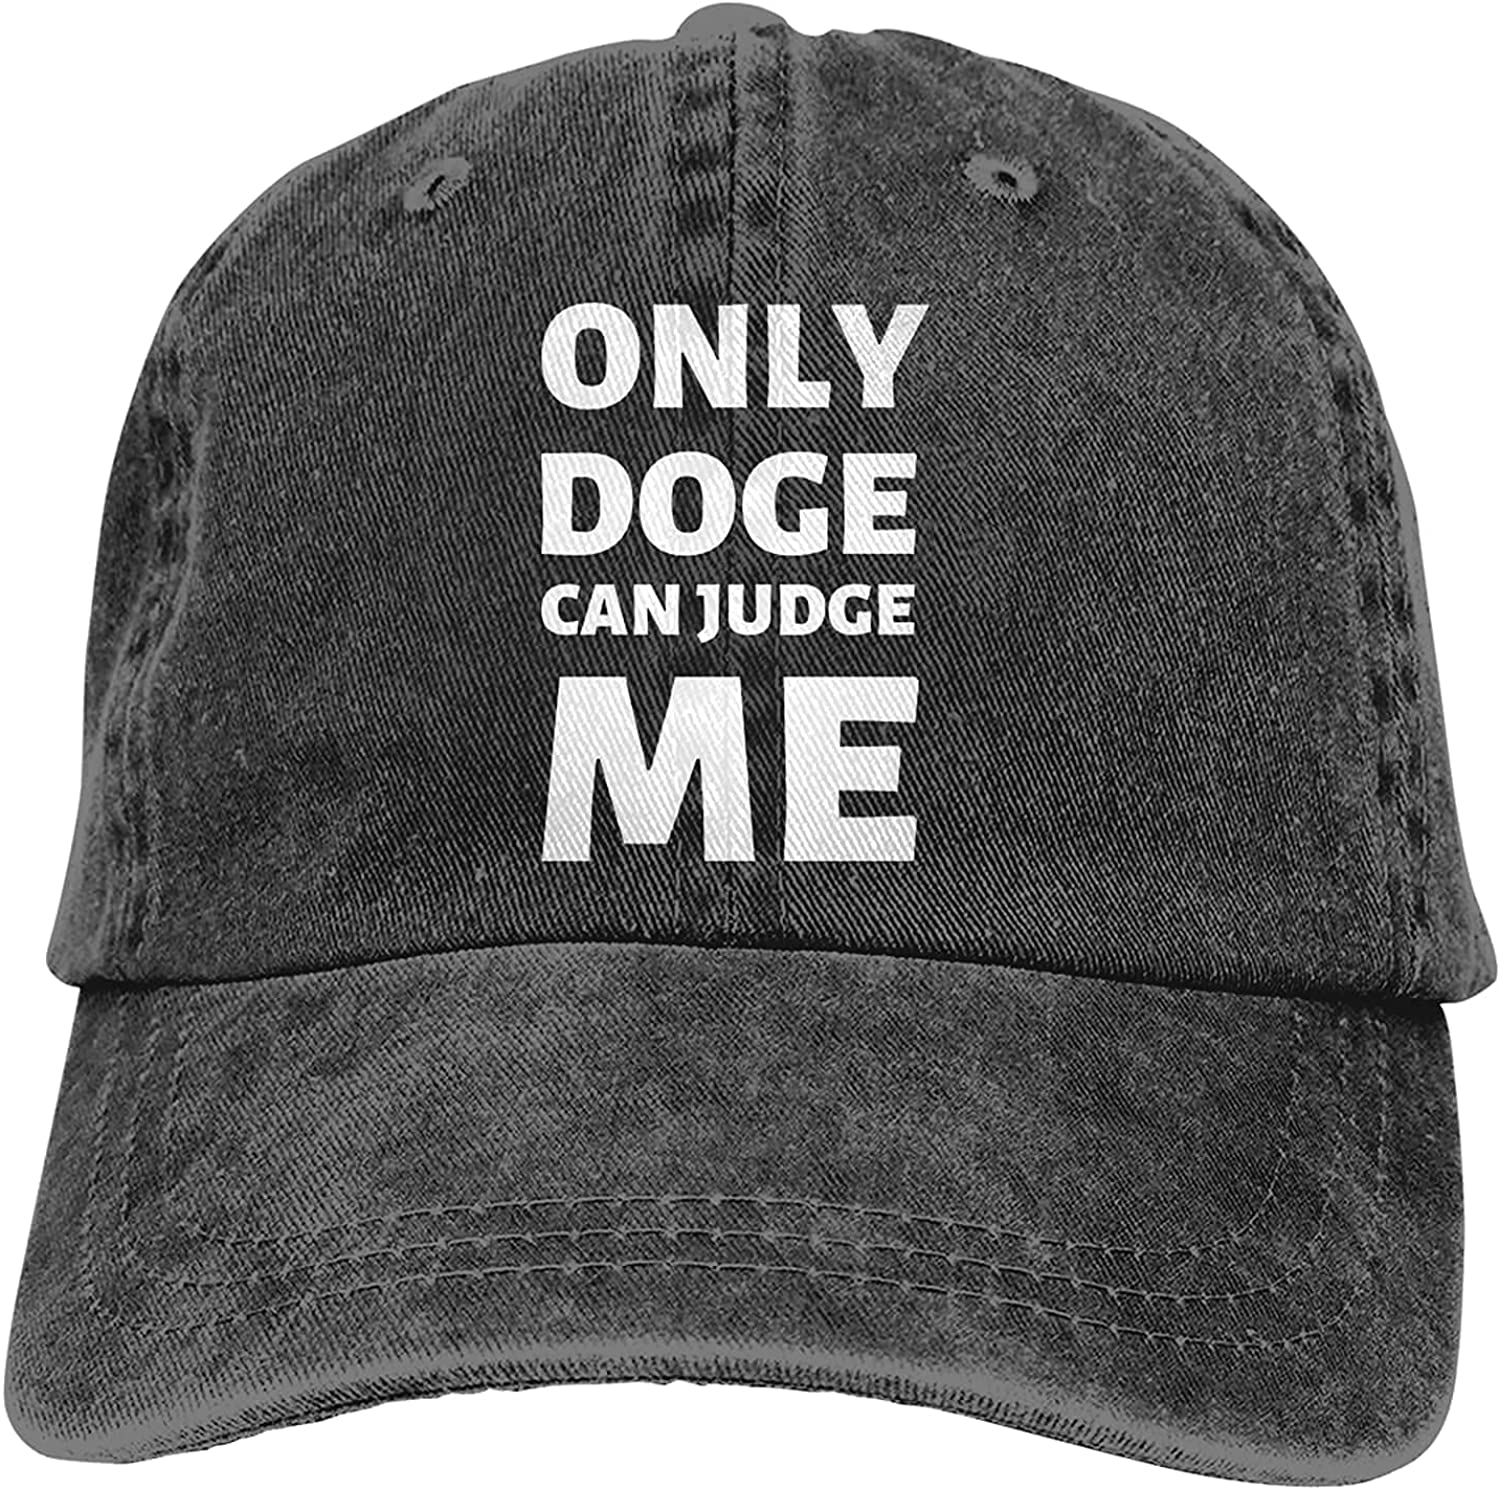 Only Doge Can Judge Me Baseball Trucker Selling Max 51% OFF Cowboy Retro Hat Cap Dad